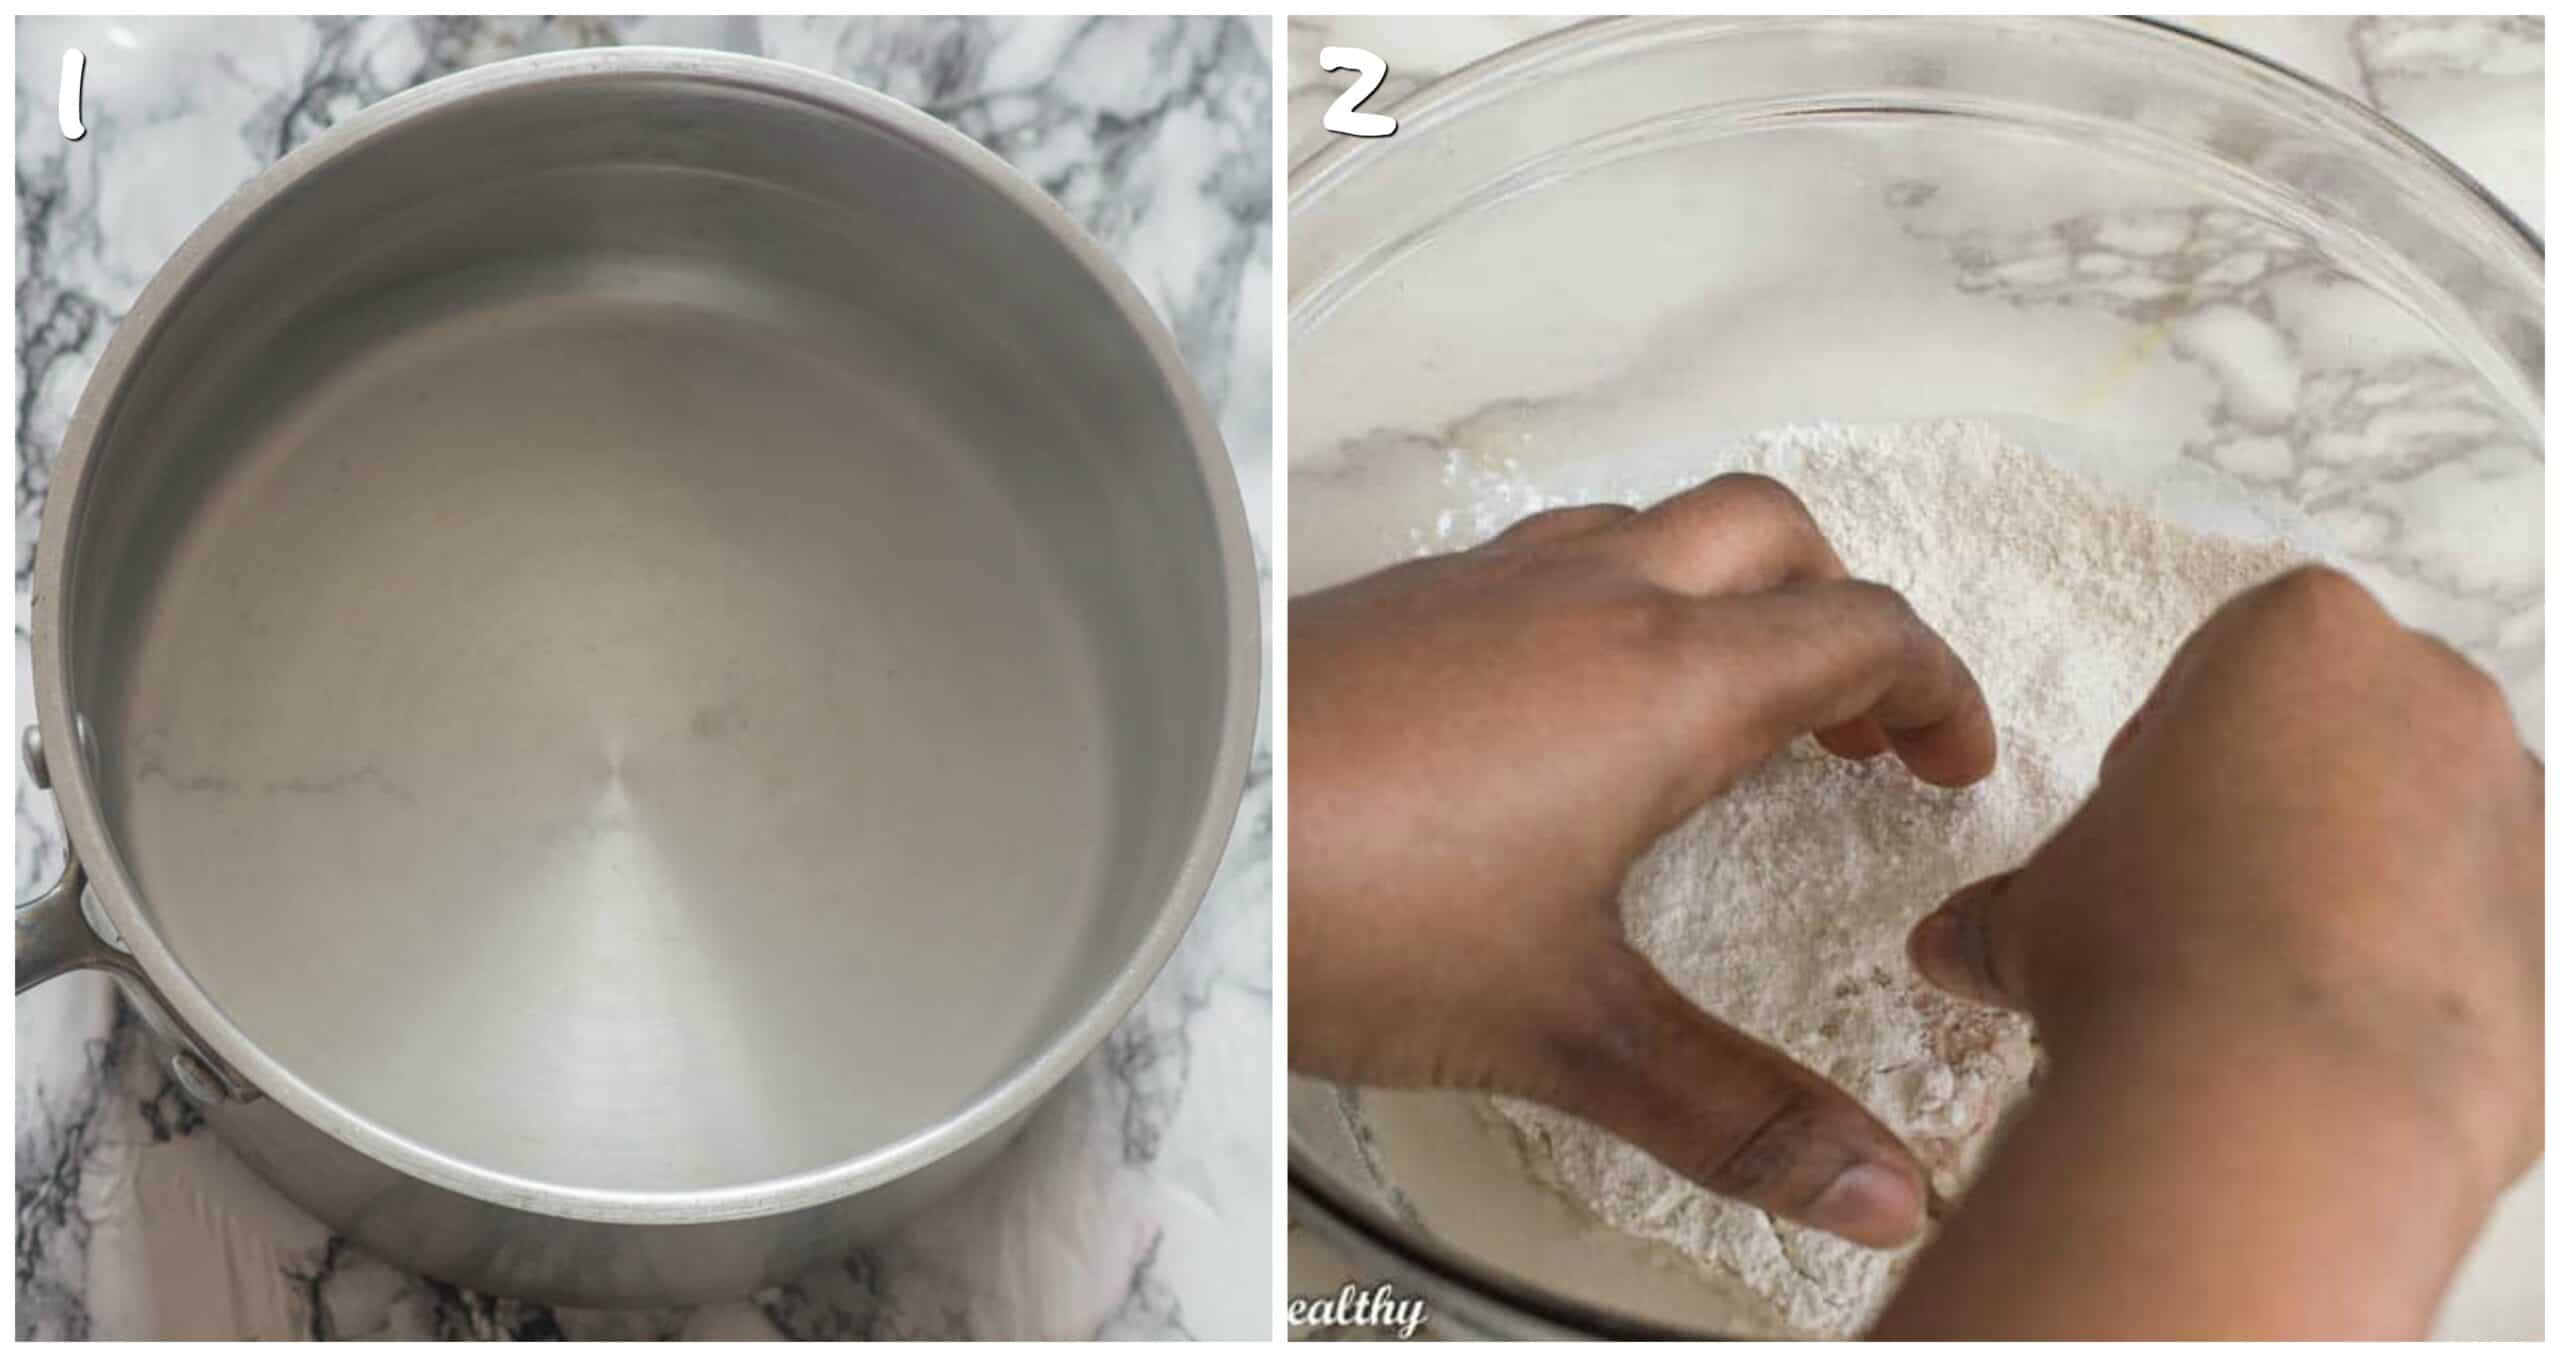 steps 1-2 boiling water and kneading the dough